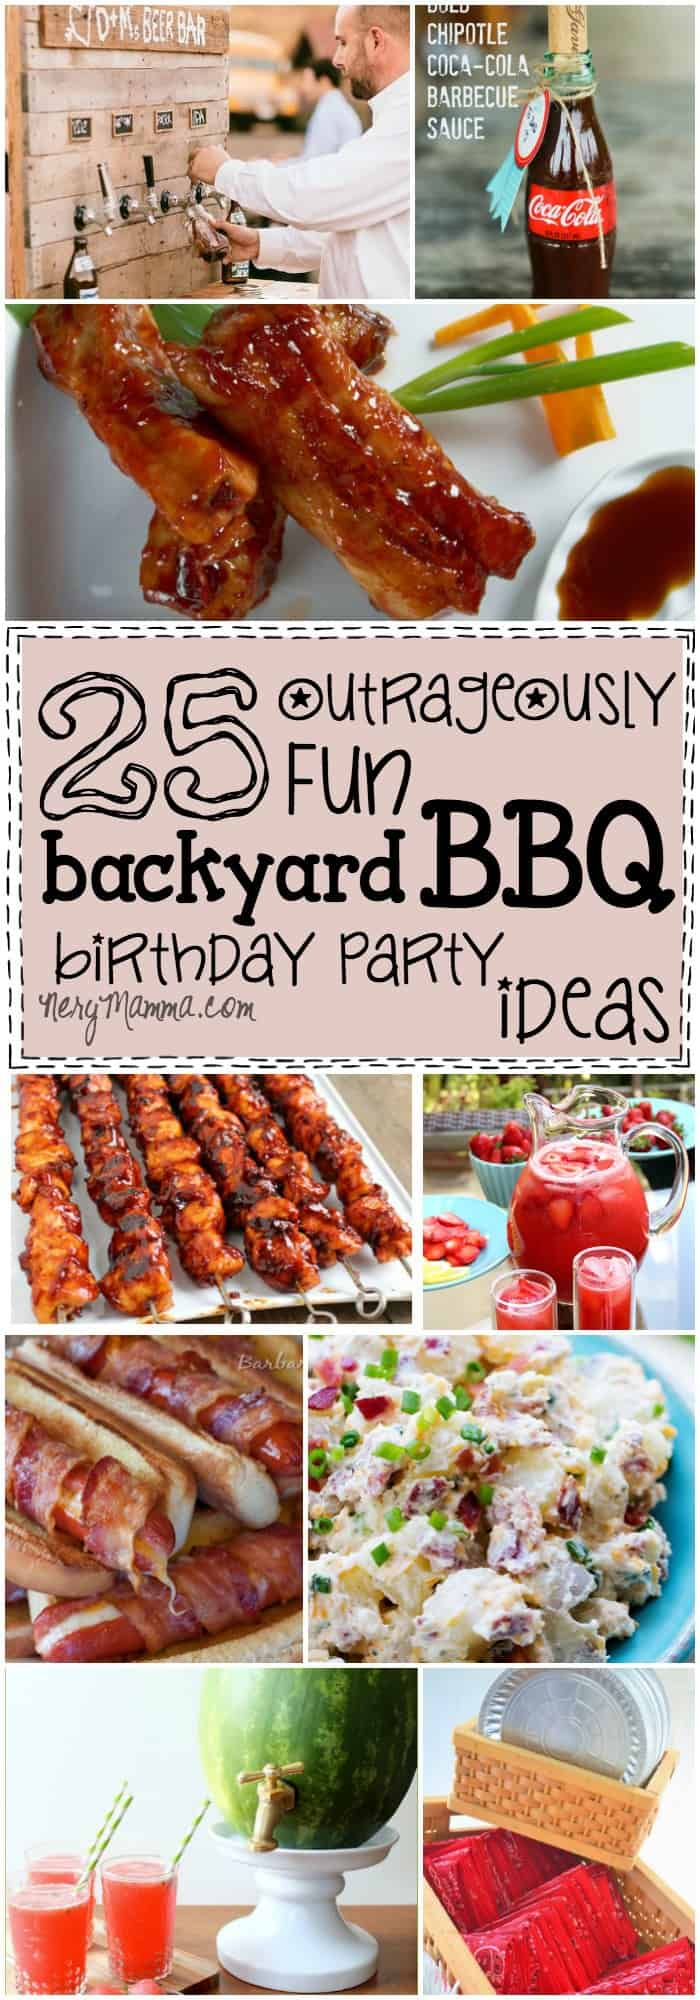 Outrageously Fun Backyard BBQ Birthday Party Ideas Nerdy Mamma - Backyard bbq party ideas